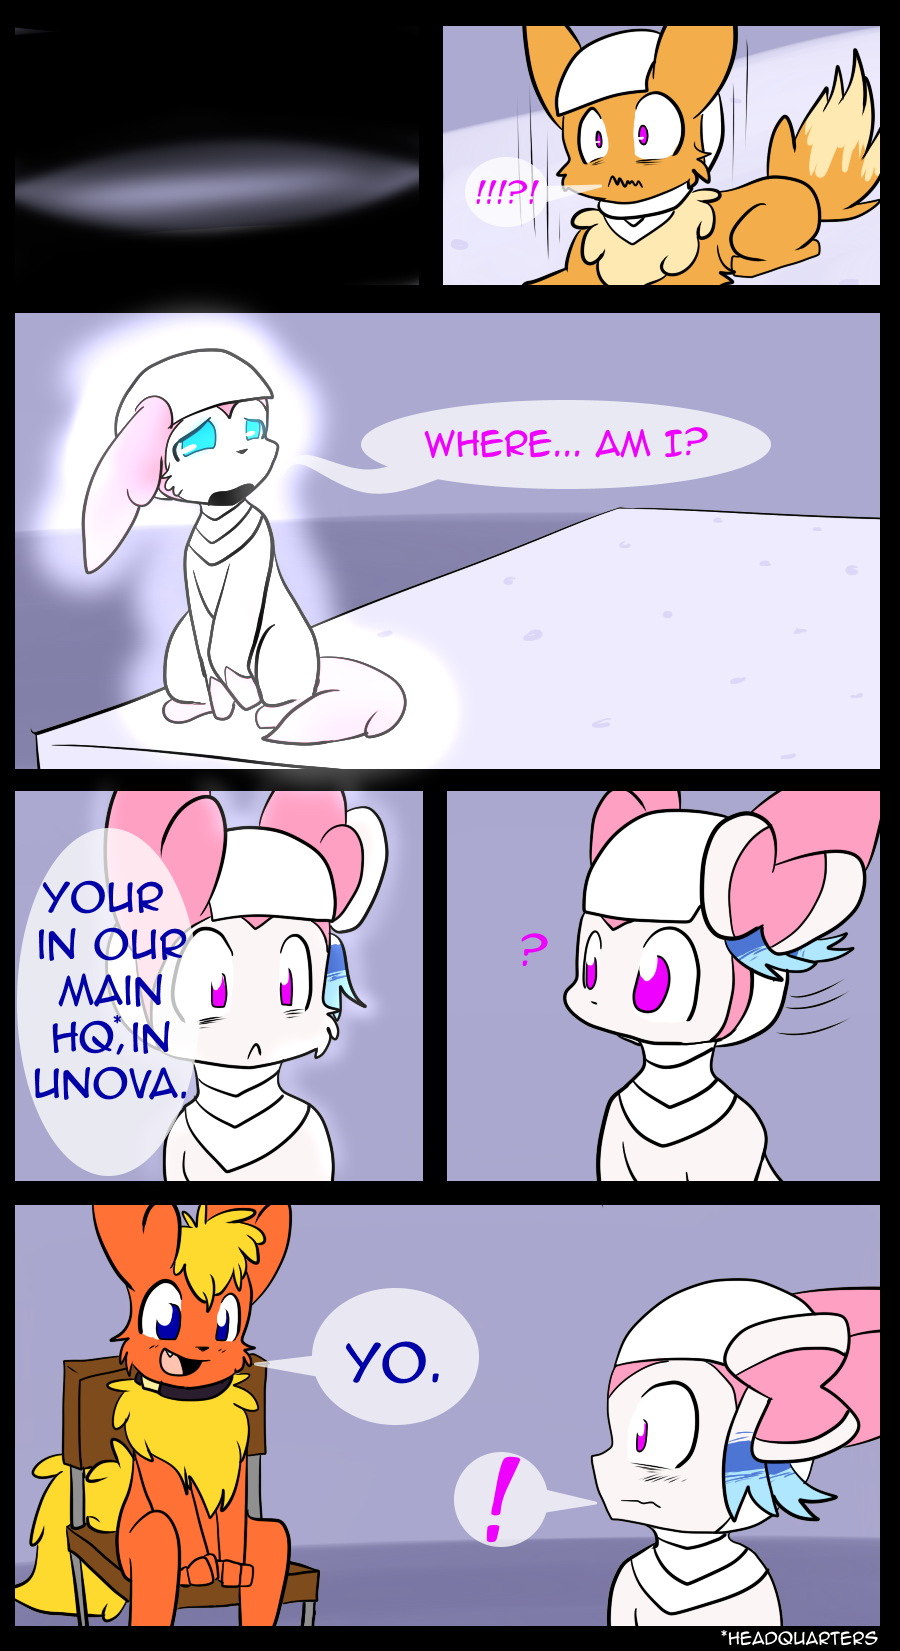 The last comic is probably the only time something like that will happen in the comic.